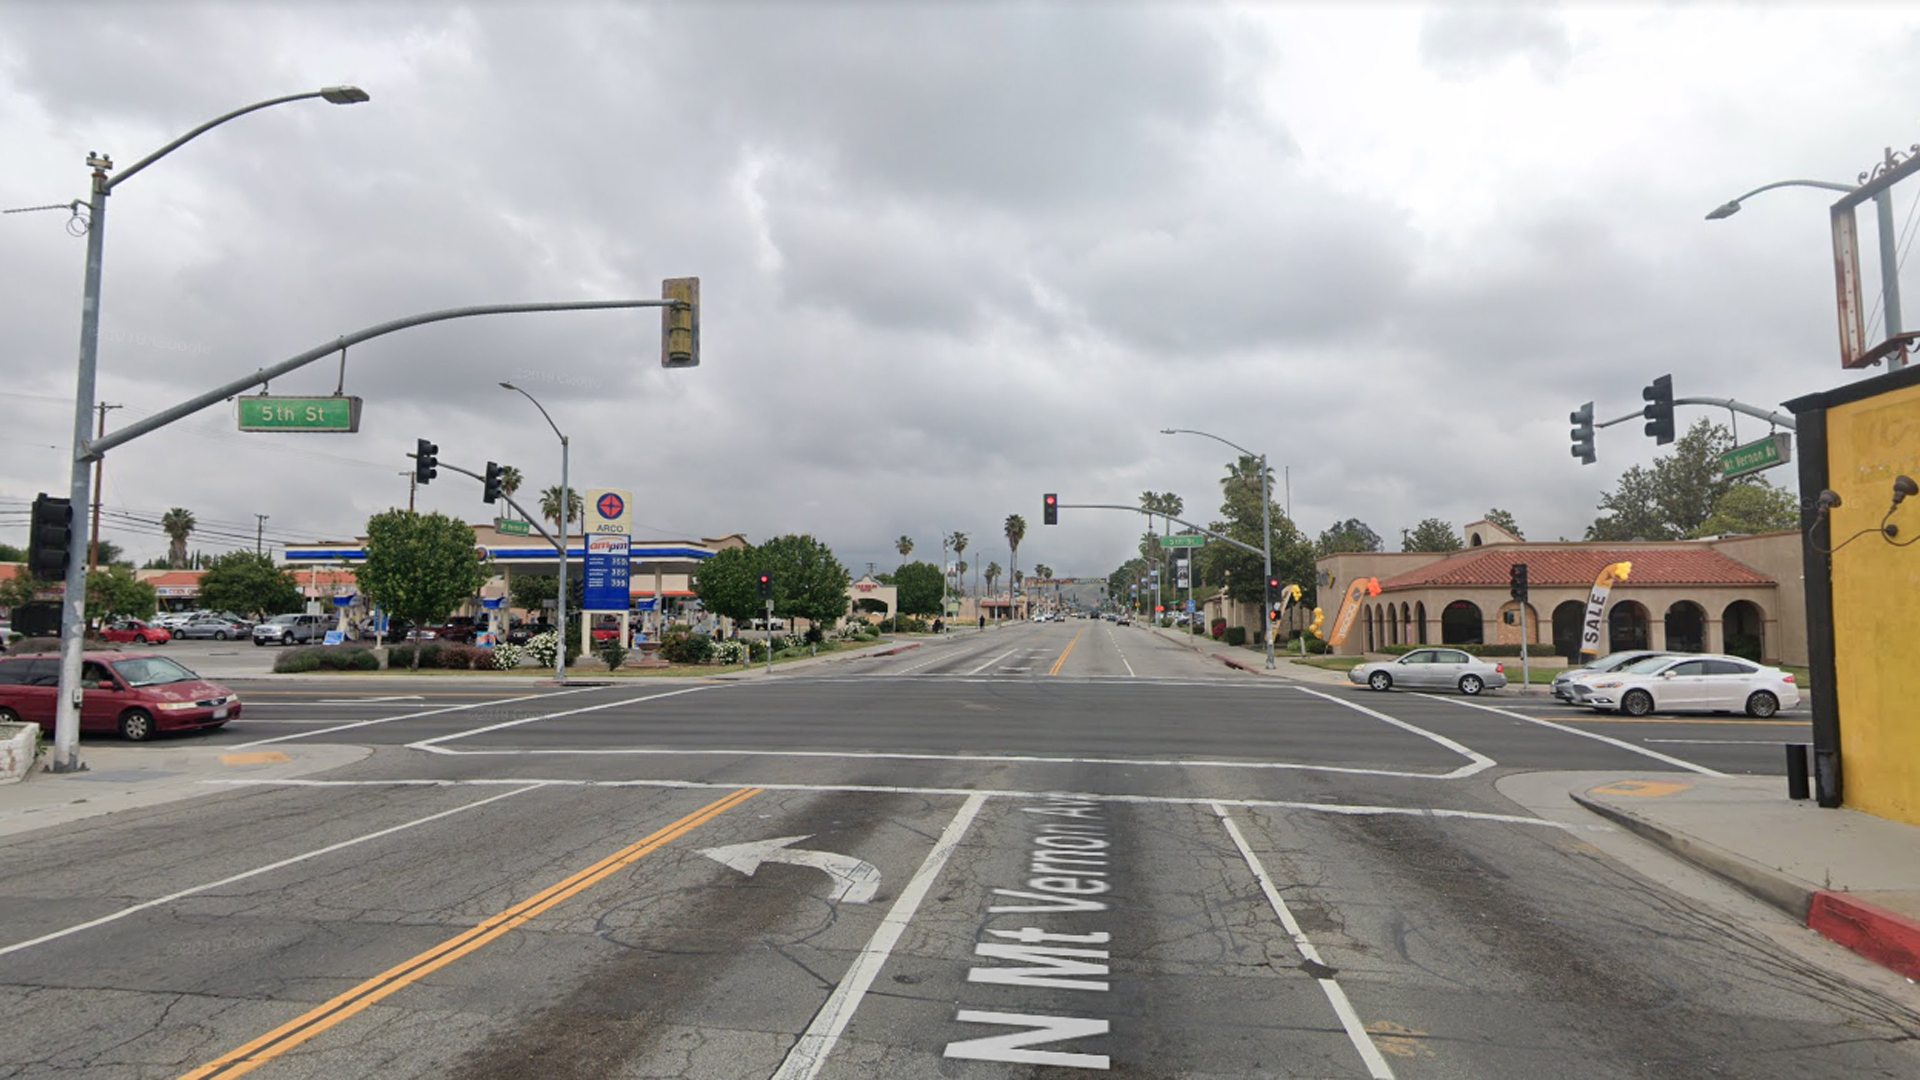 The intersection of Fifth Street and Mount Vernon Avenue in San Bernardino is seen in a Google image.